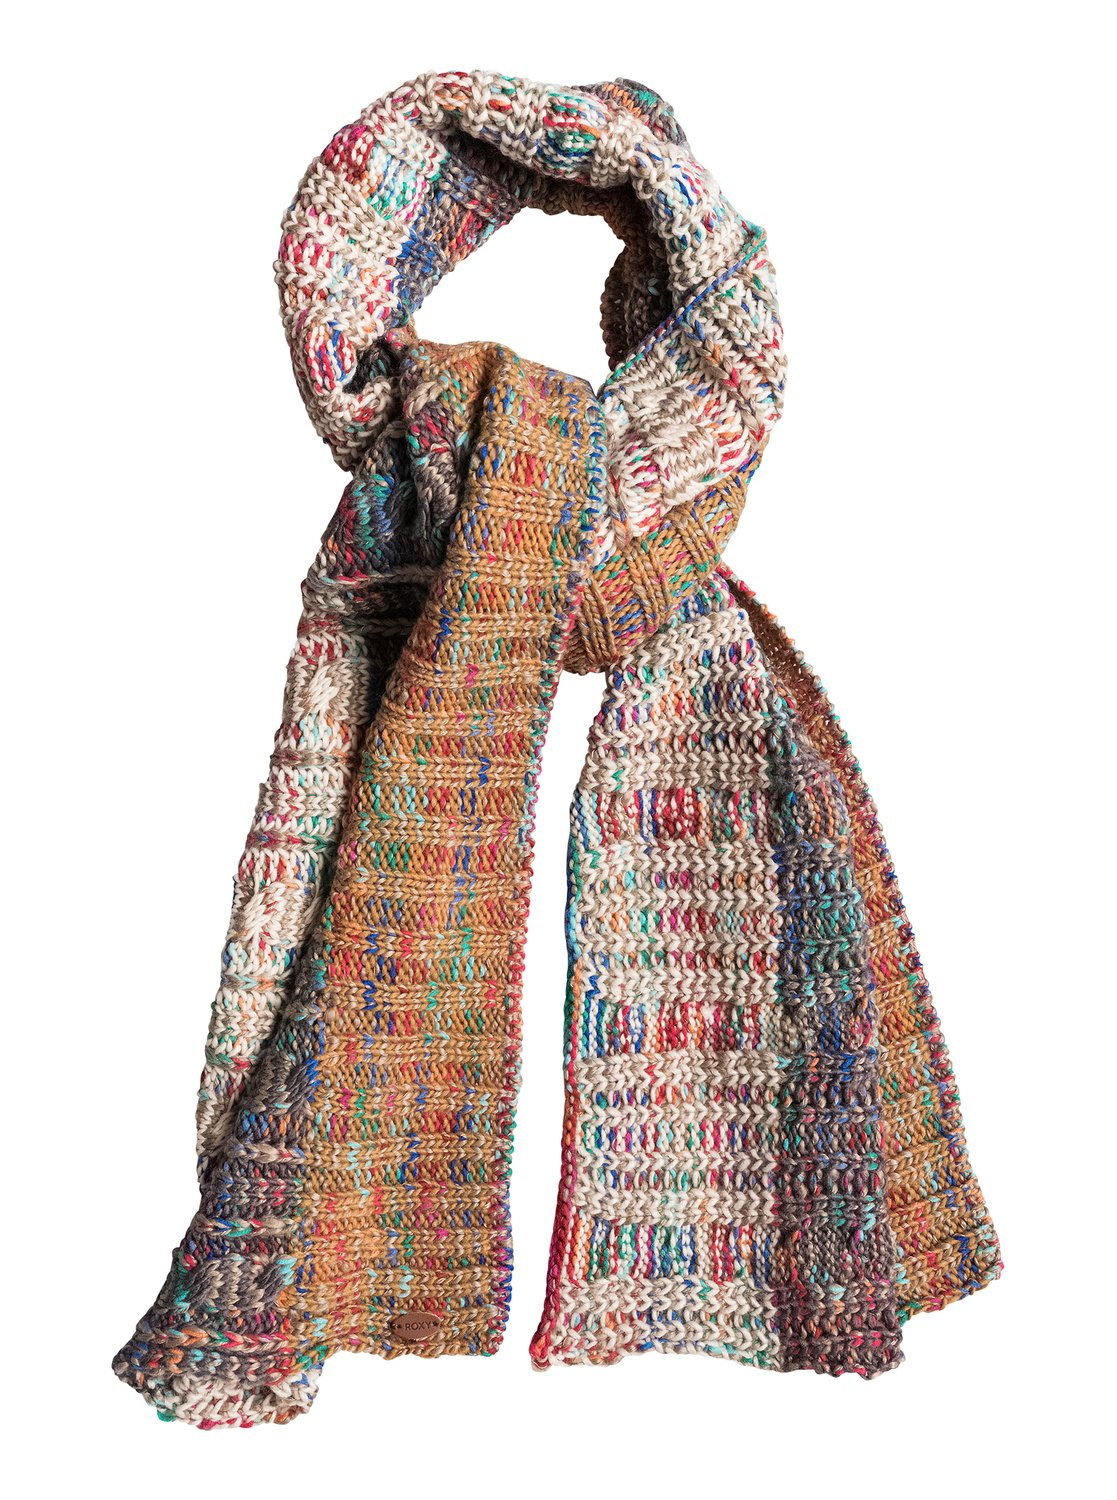 Best Of Along A Coast Knit Scarf Arjaa Cable Scarf Of Innovative 49 Ideas Cable Scarf